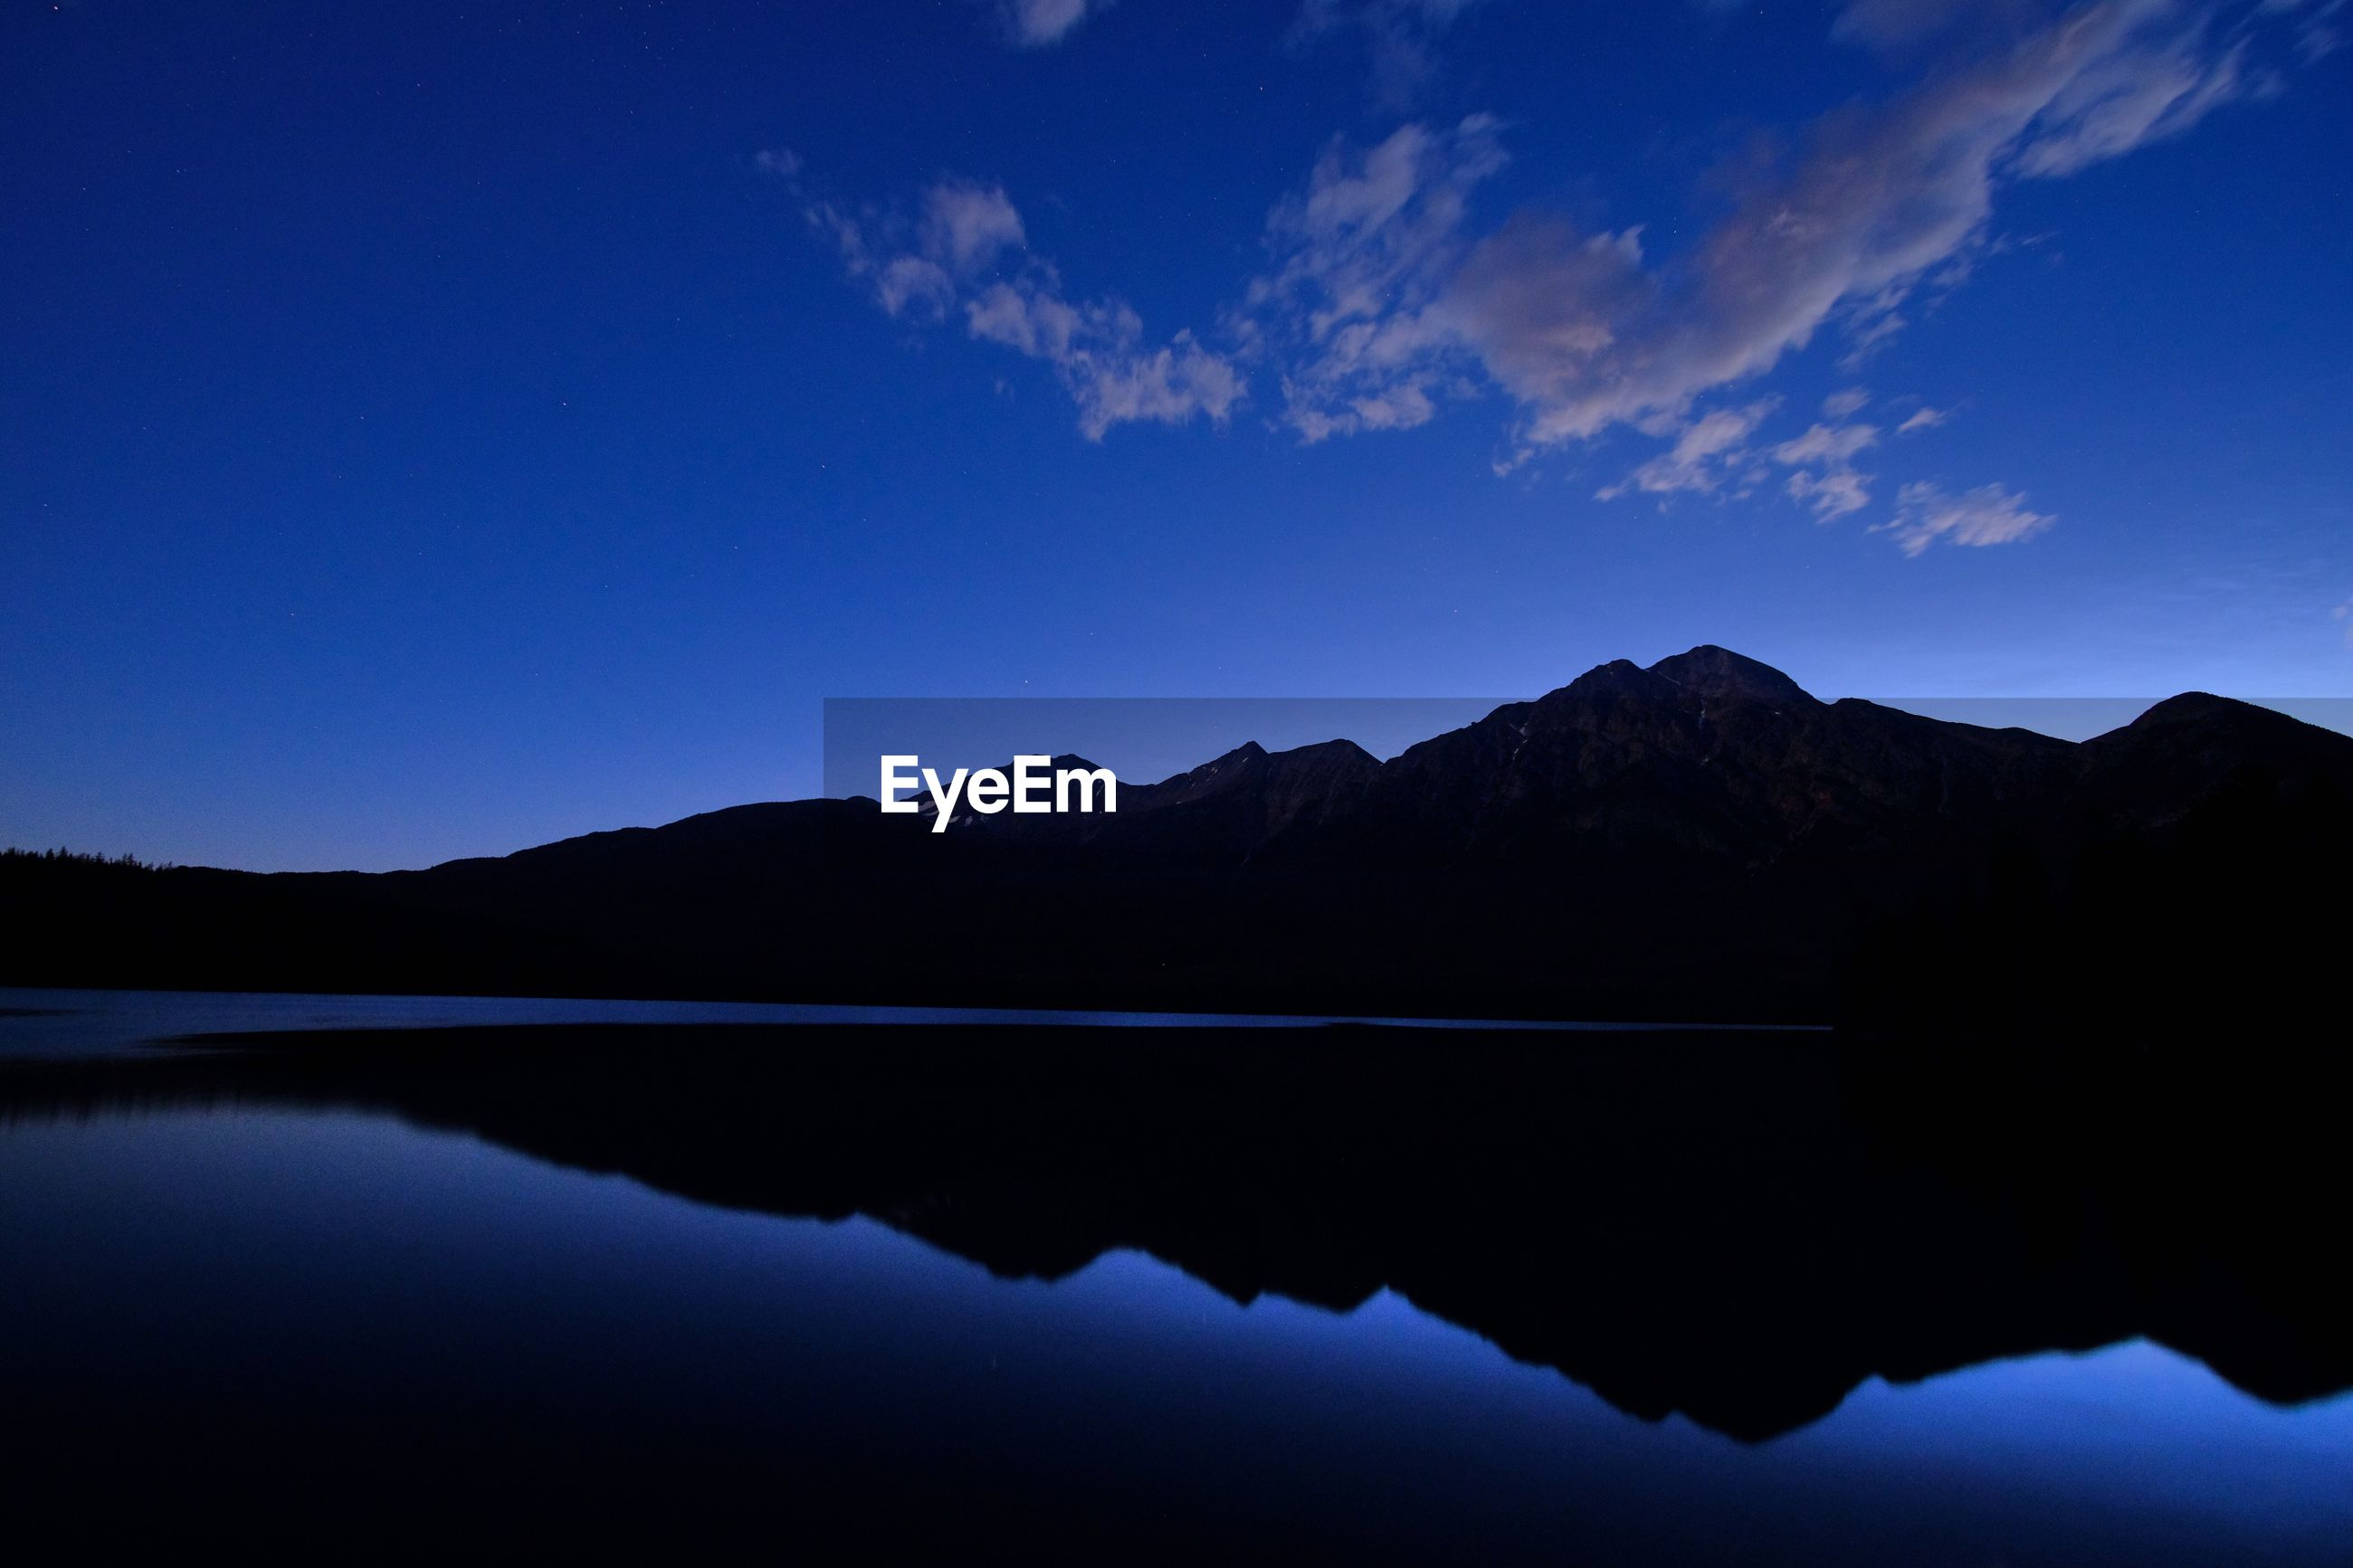 SCENIC VIEW OF LAKE BY SILHOUETTE MOUNTAINS AGAINST BLUE SKY